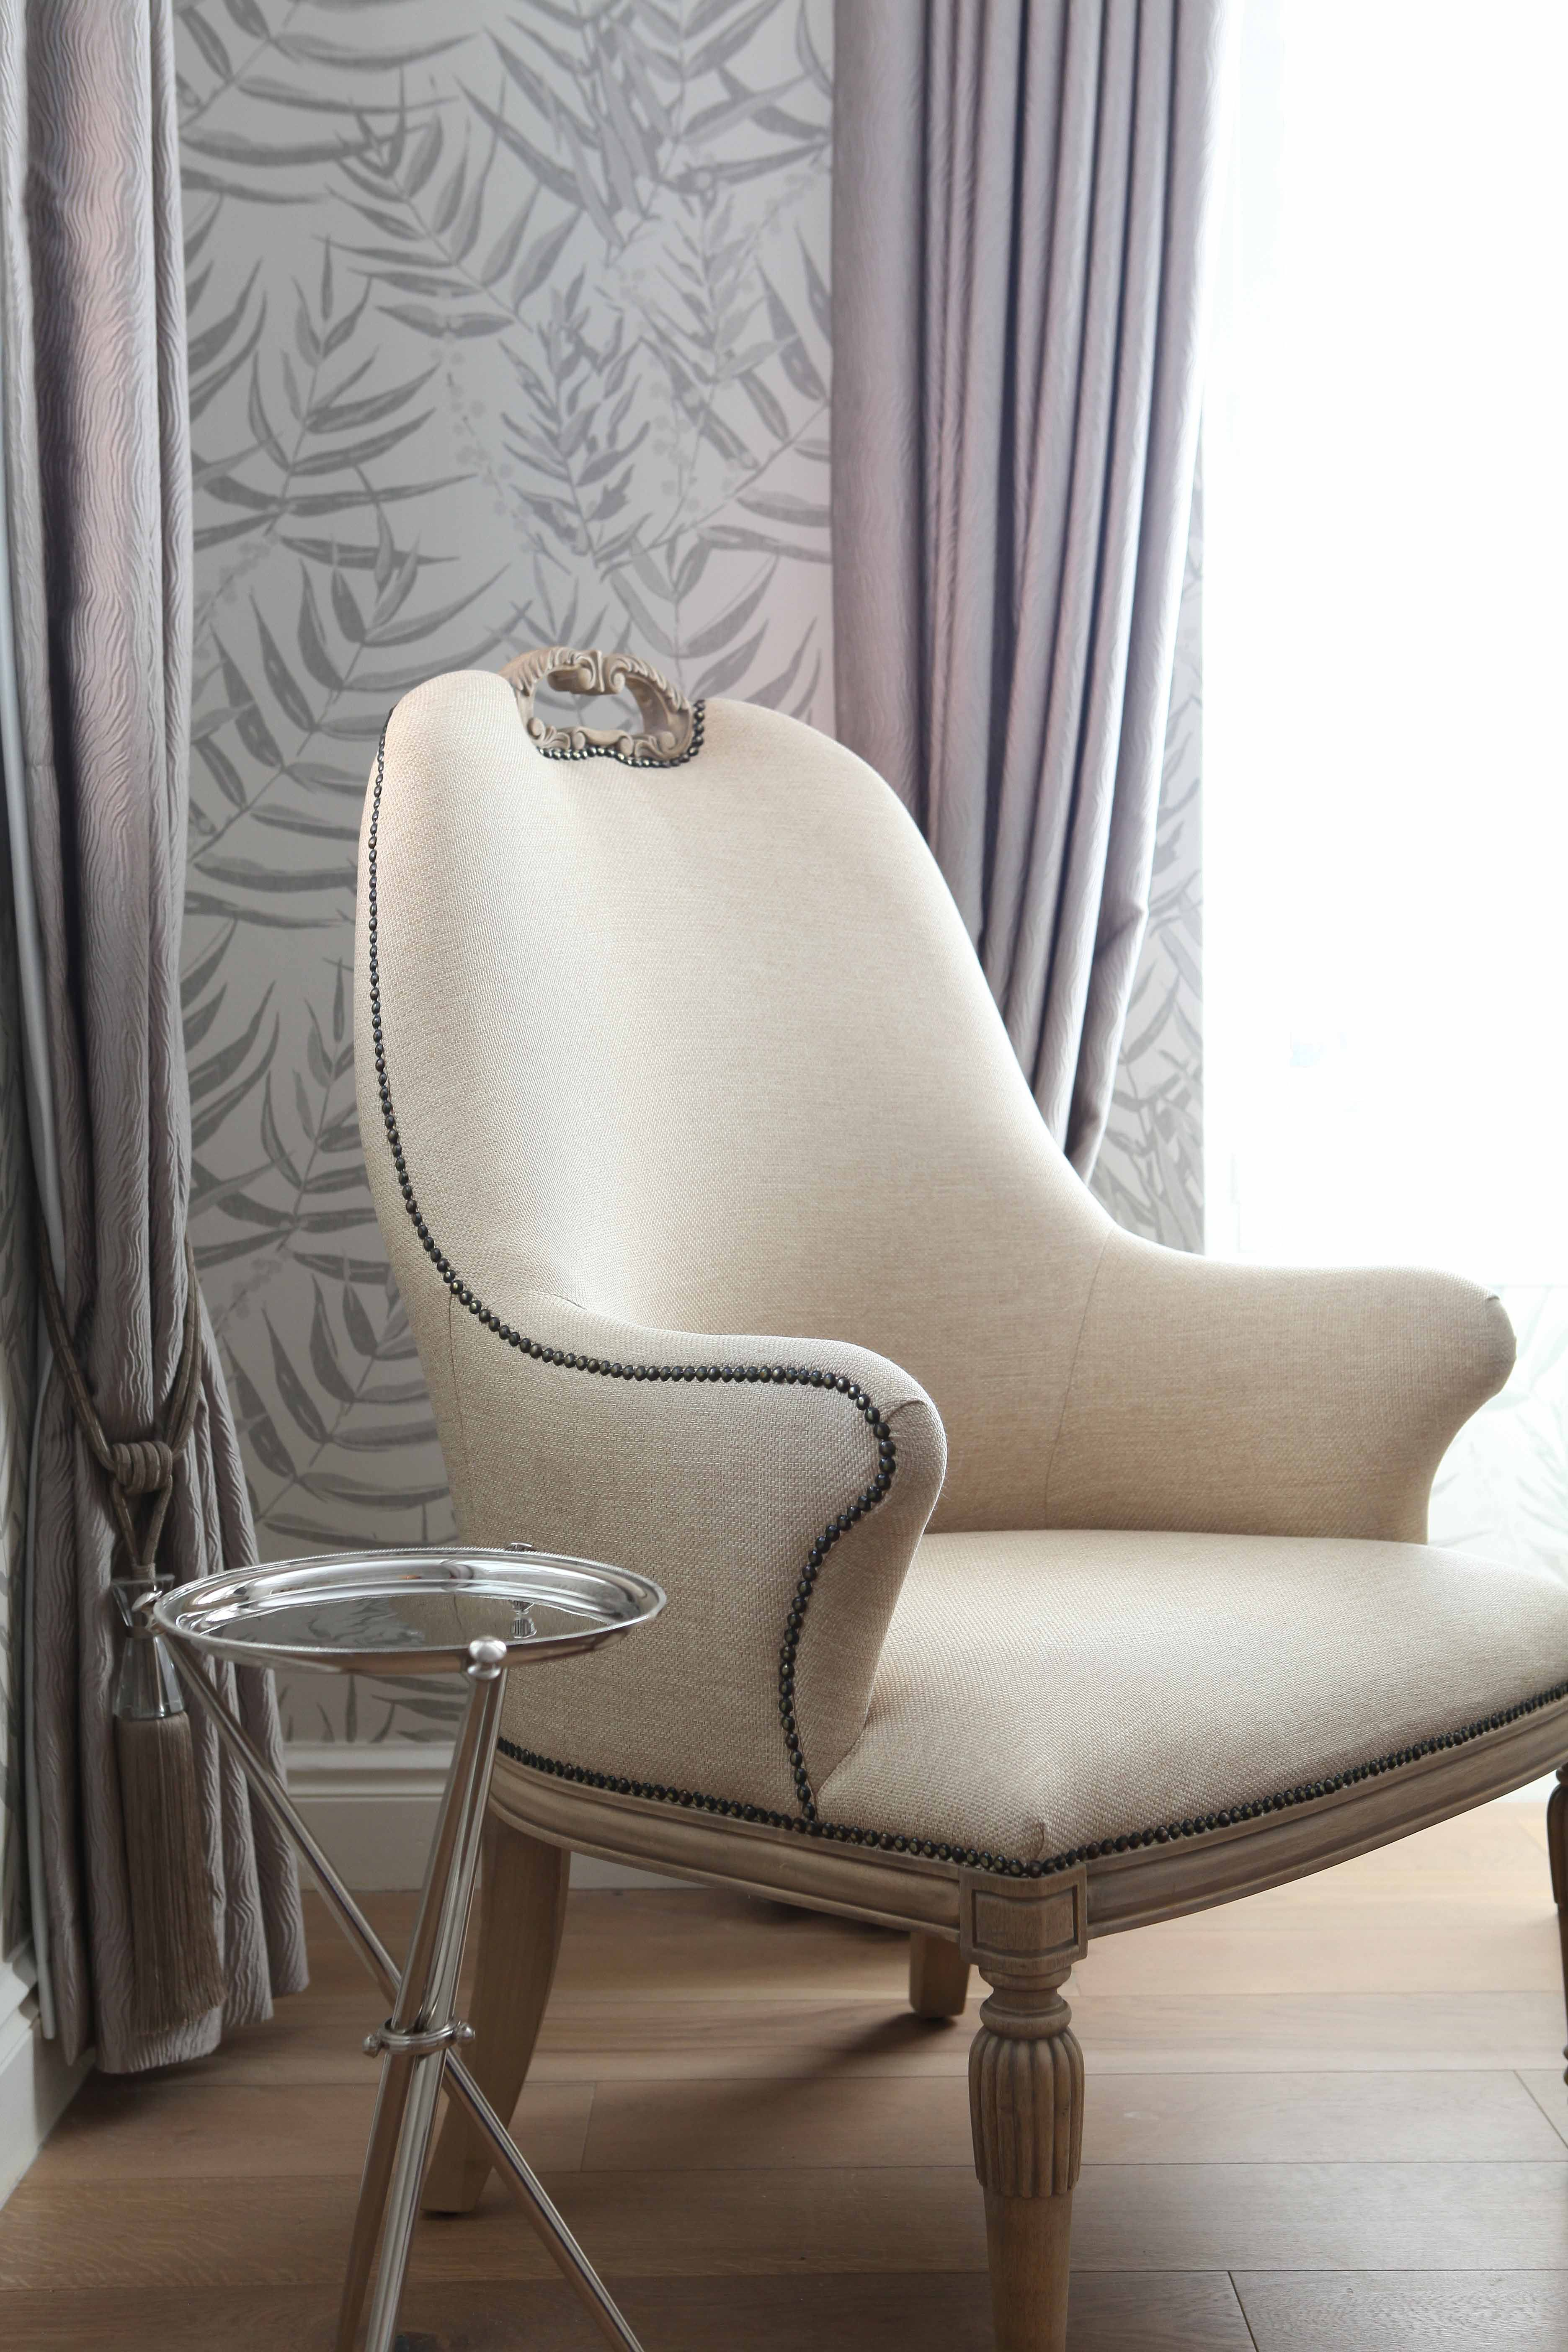 Mm Design Home Feature Chair Design Home Decor Inspiration